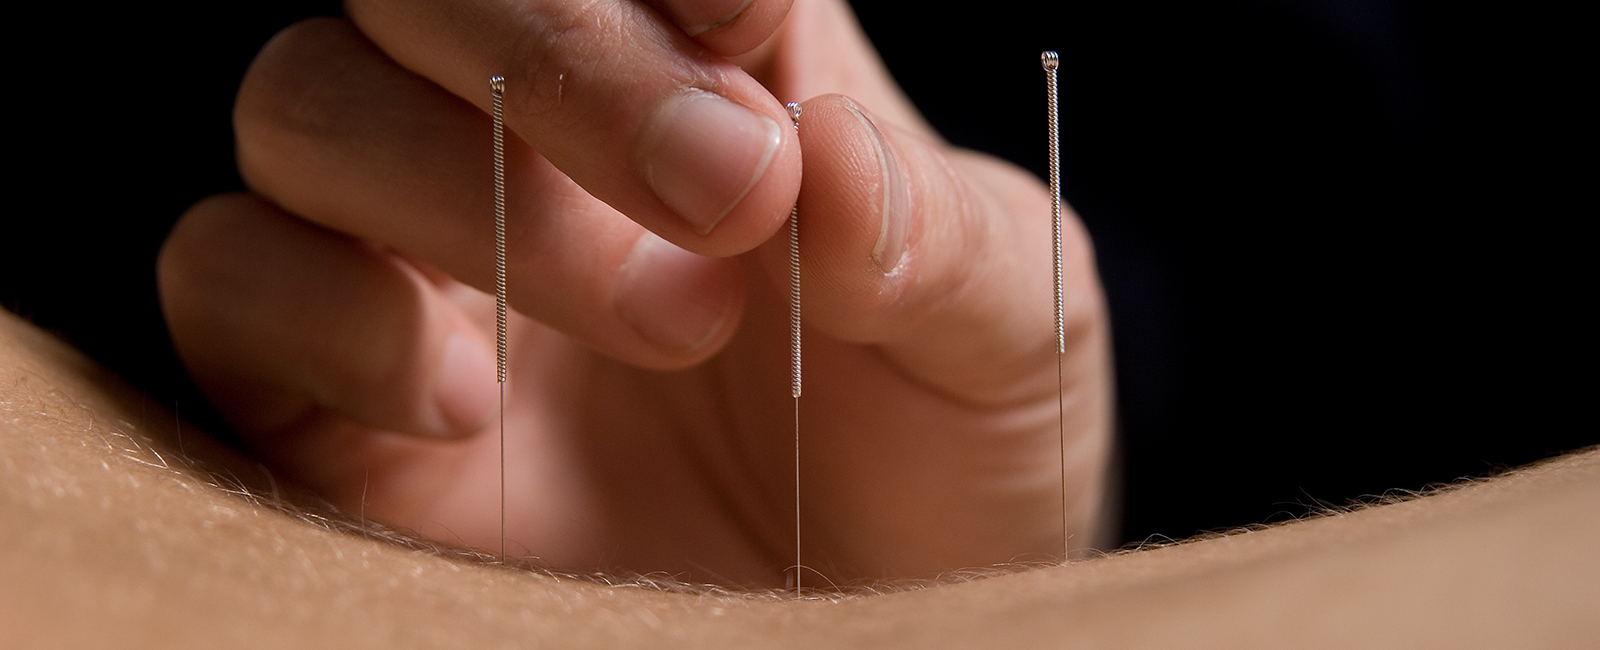 Southwell-Acupuncture-needles-acupuncture-back